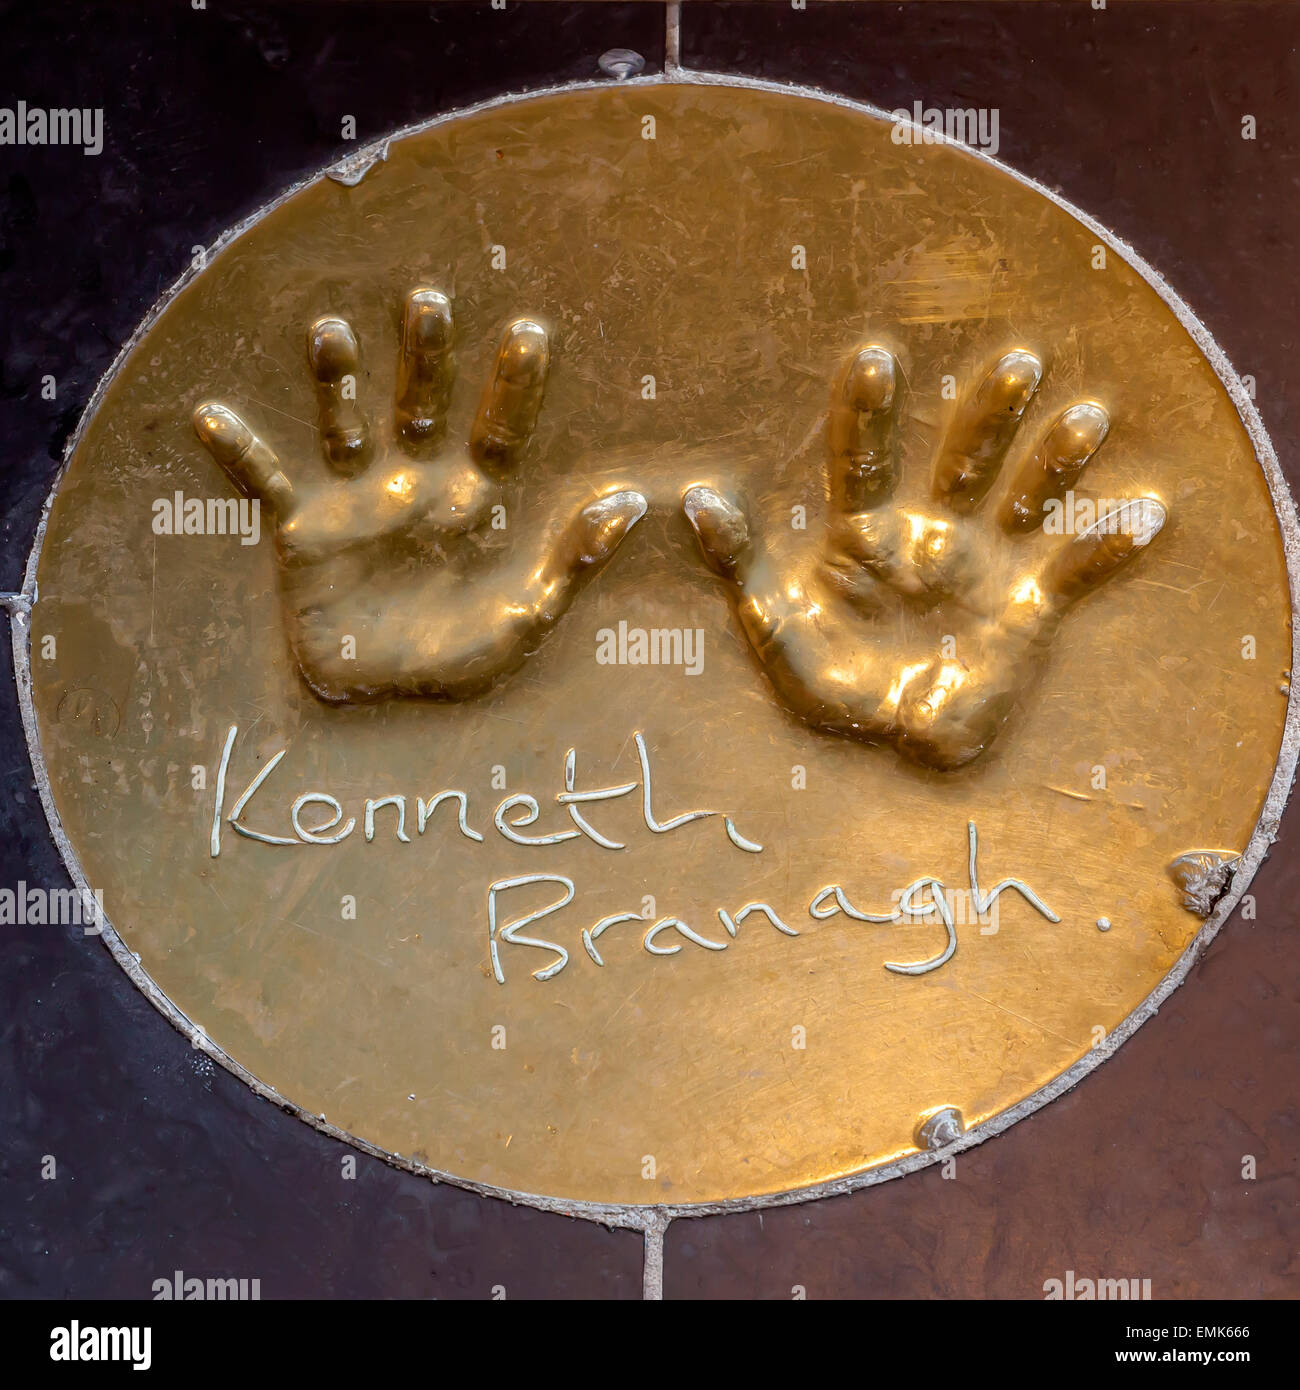 Handprints of British actor Kenneth Branagh on the floor in front of a London cinema, London, England, United Kingdom - Stock Image